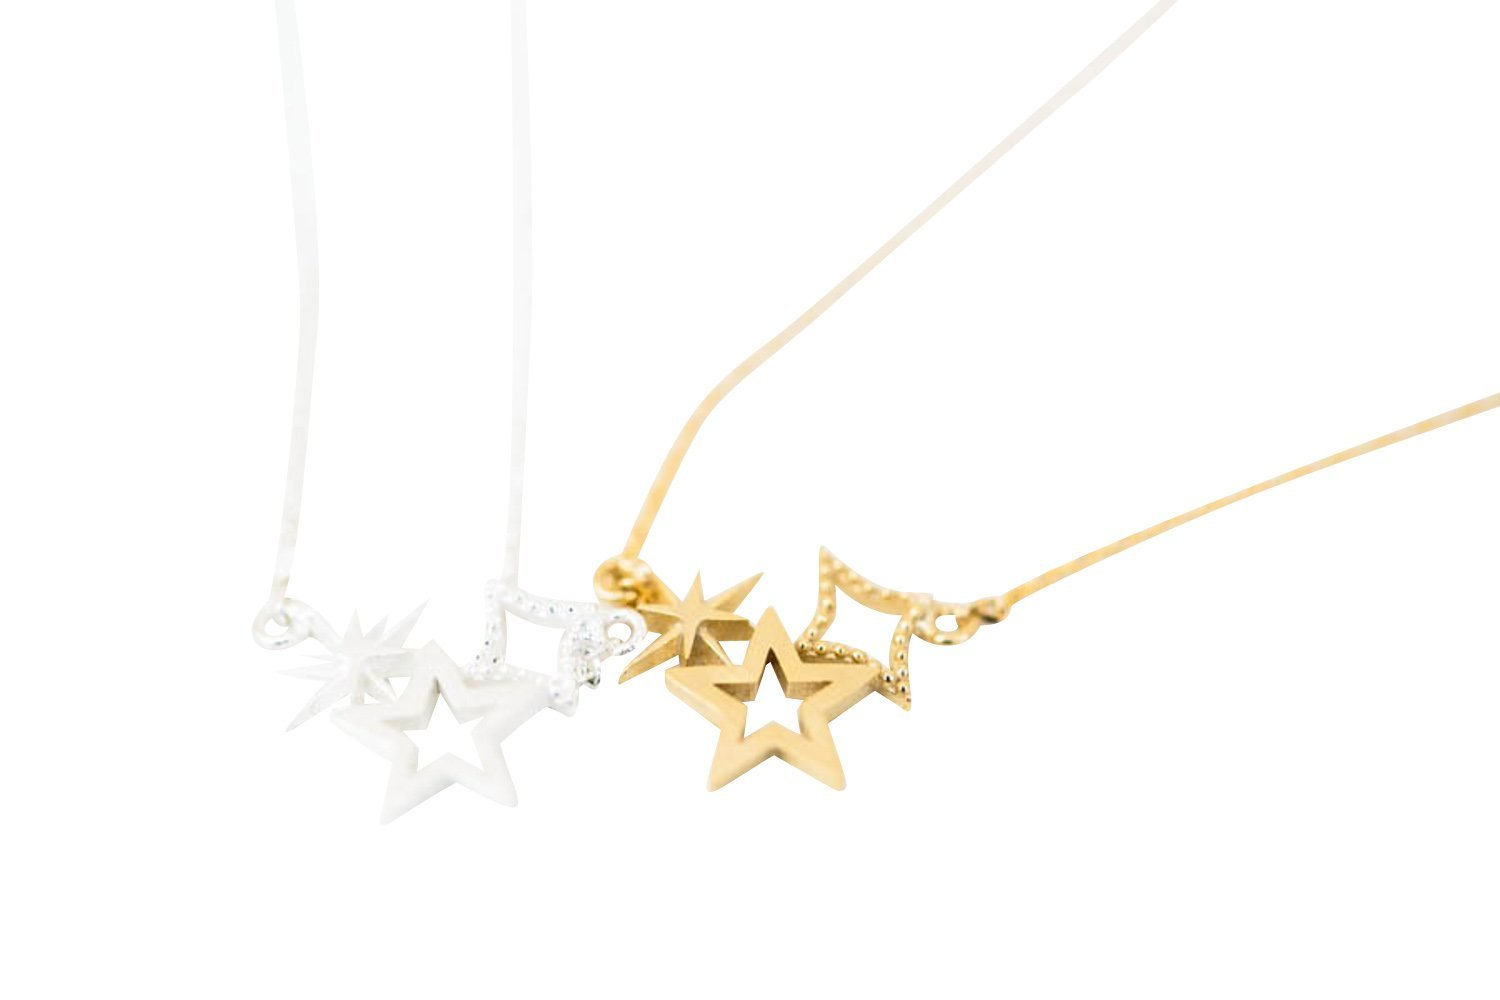 product hylnjakxvpcb shape swarovski crystrals china from necklace star fashion jewelry ancient pendant